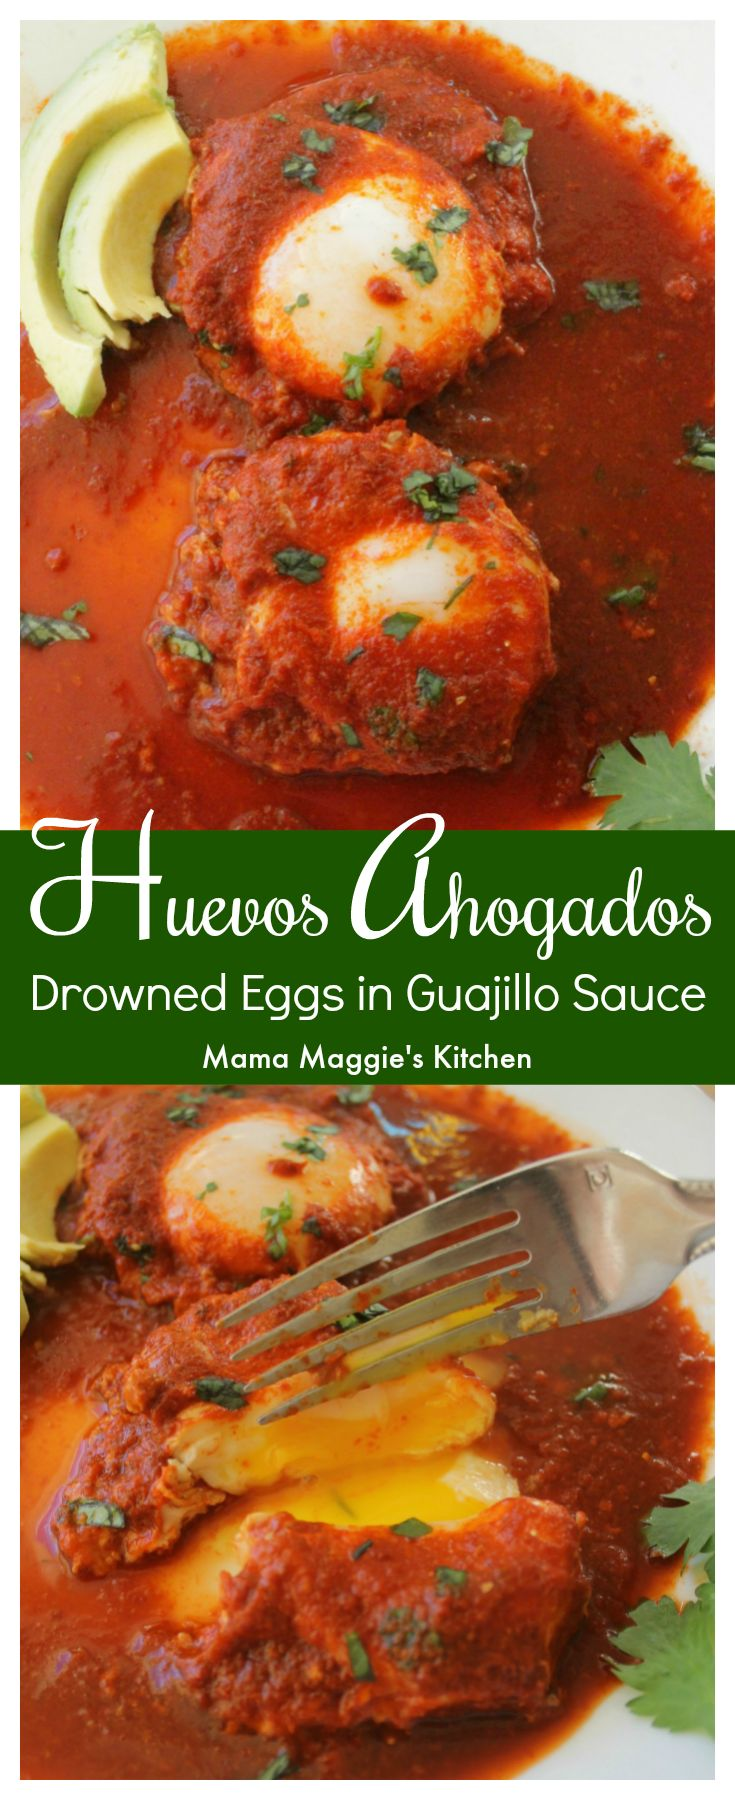 Huevos Ahogados (Drowned Eggs in Guajillo Sauce) is a classic Mexican recipe. Delicious and savory. Perfect for breakfast, lunch, or dinner. By Mama Maggie's Kitchen via @maggieunz #breakfast #brunch #eggs #huevos #huevosahogados #mexicanfood #mexicancuisine #MexicanRecipes #recipes